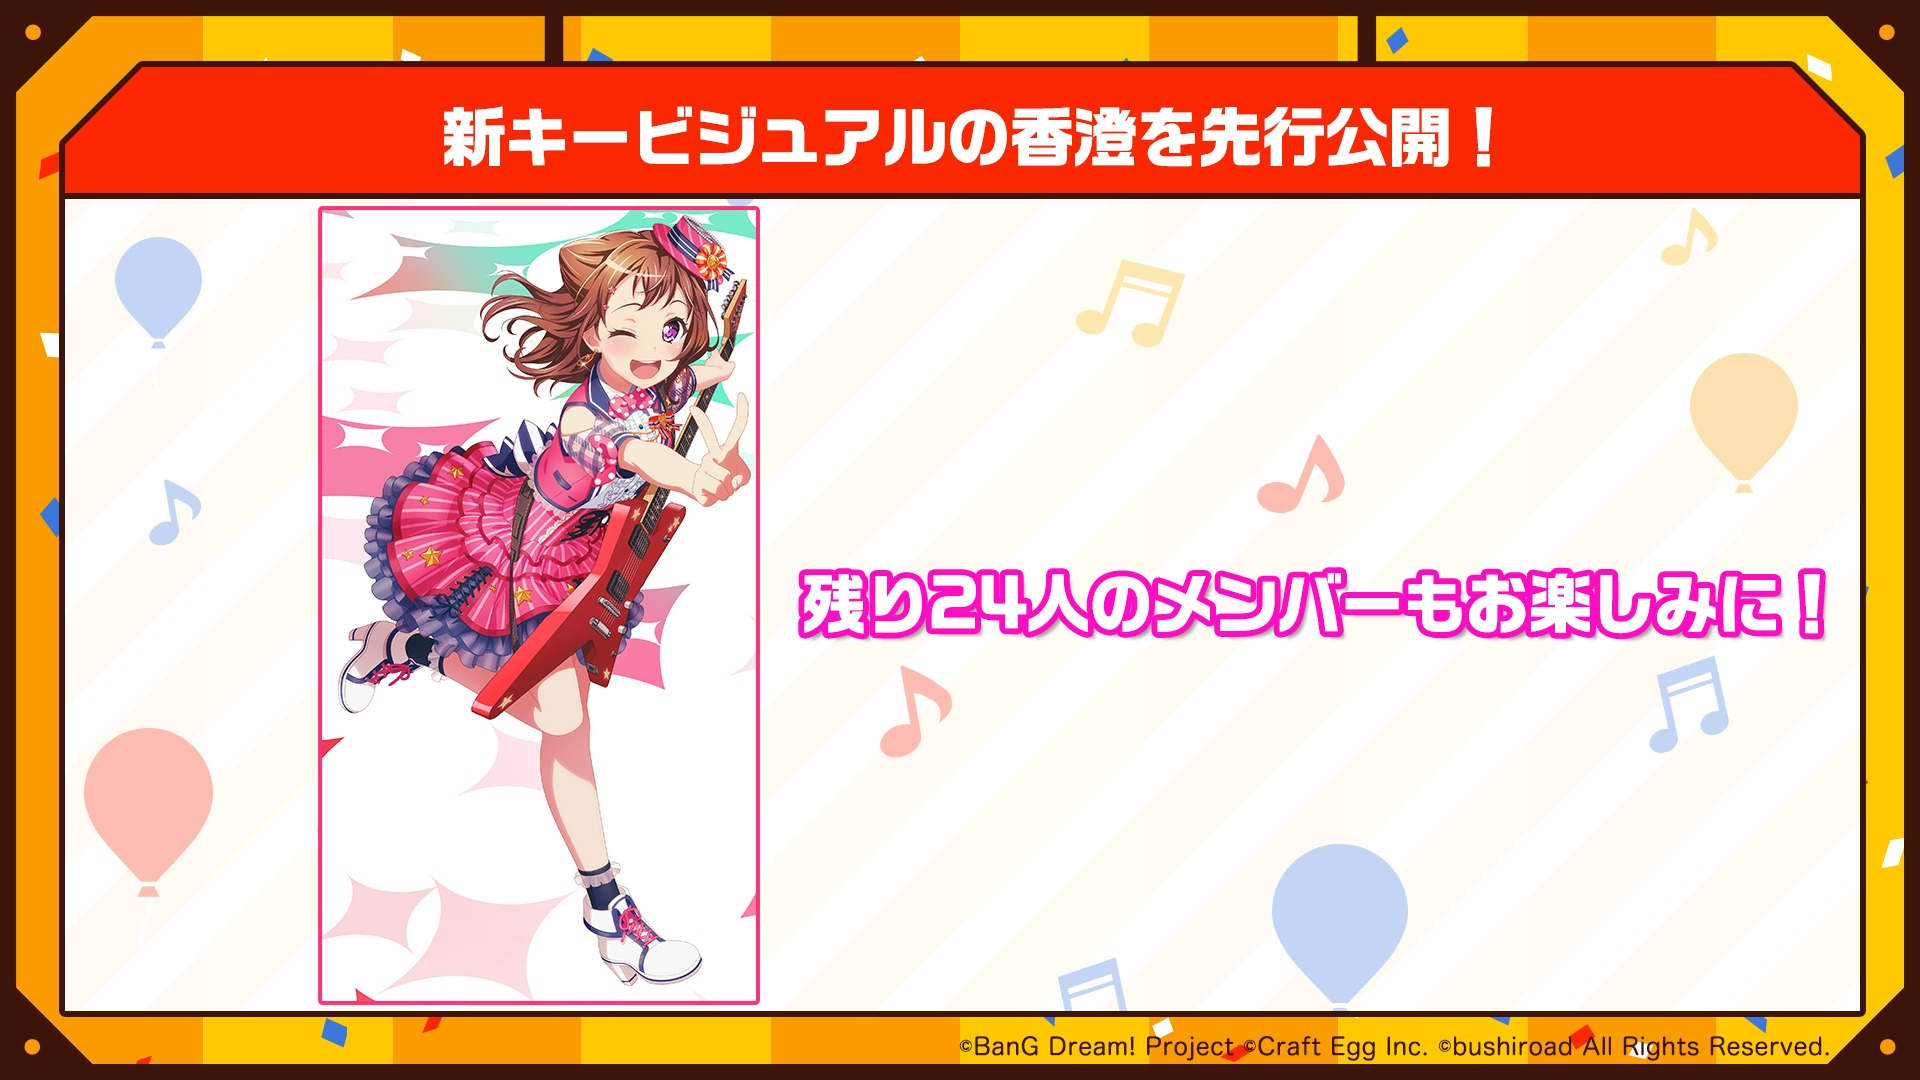 新キービジュアル (c)BanG Dream! Project (c)Craft Egg Inc. (c)bushiroad All Rights Reserved.